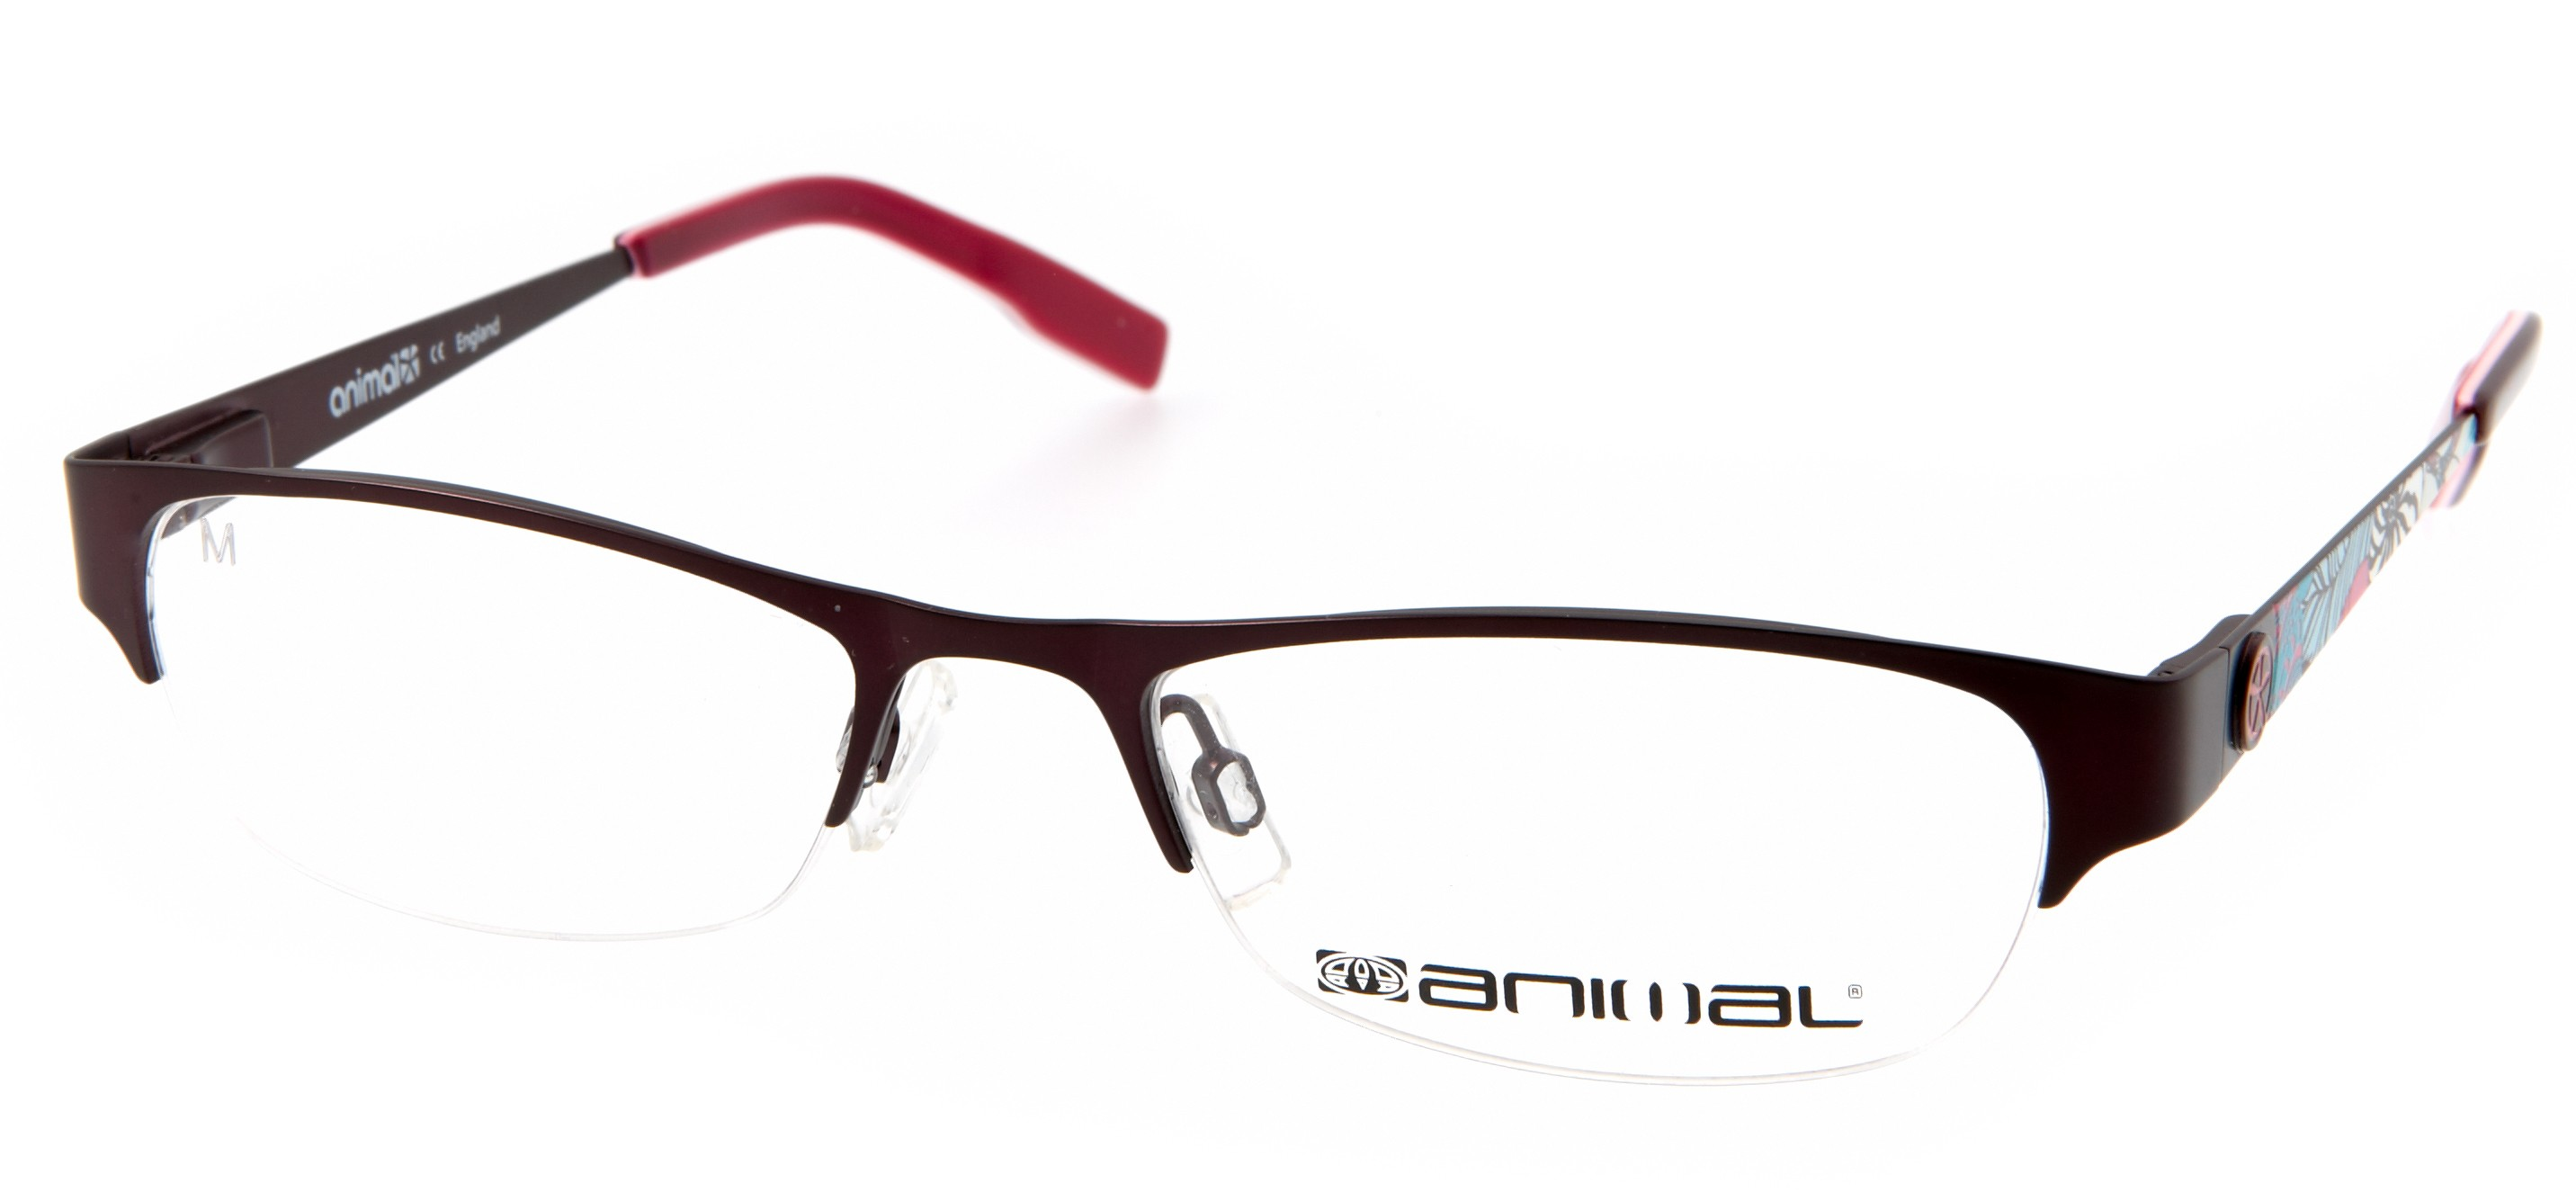 Rimless Glasses For Small Faces : Frames That Suit Your Face Shape HuffPost UK